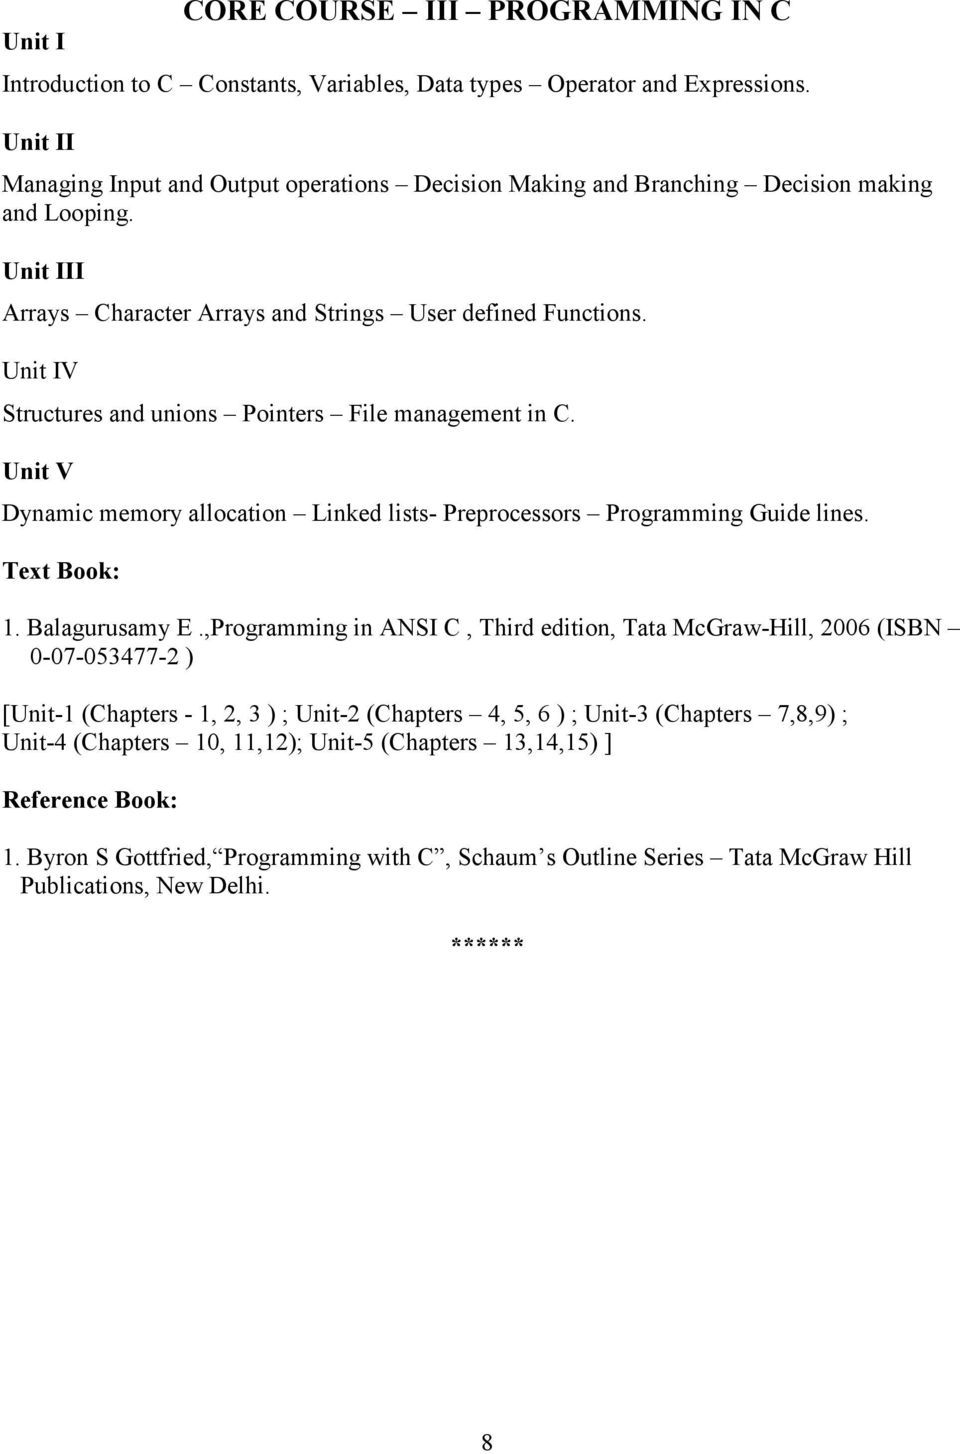 Byron S Gottfried Programming With C Pdf